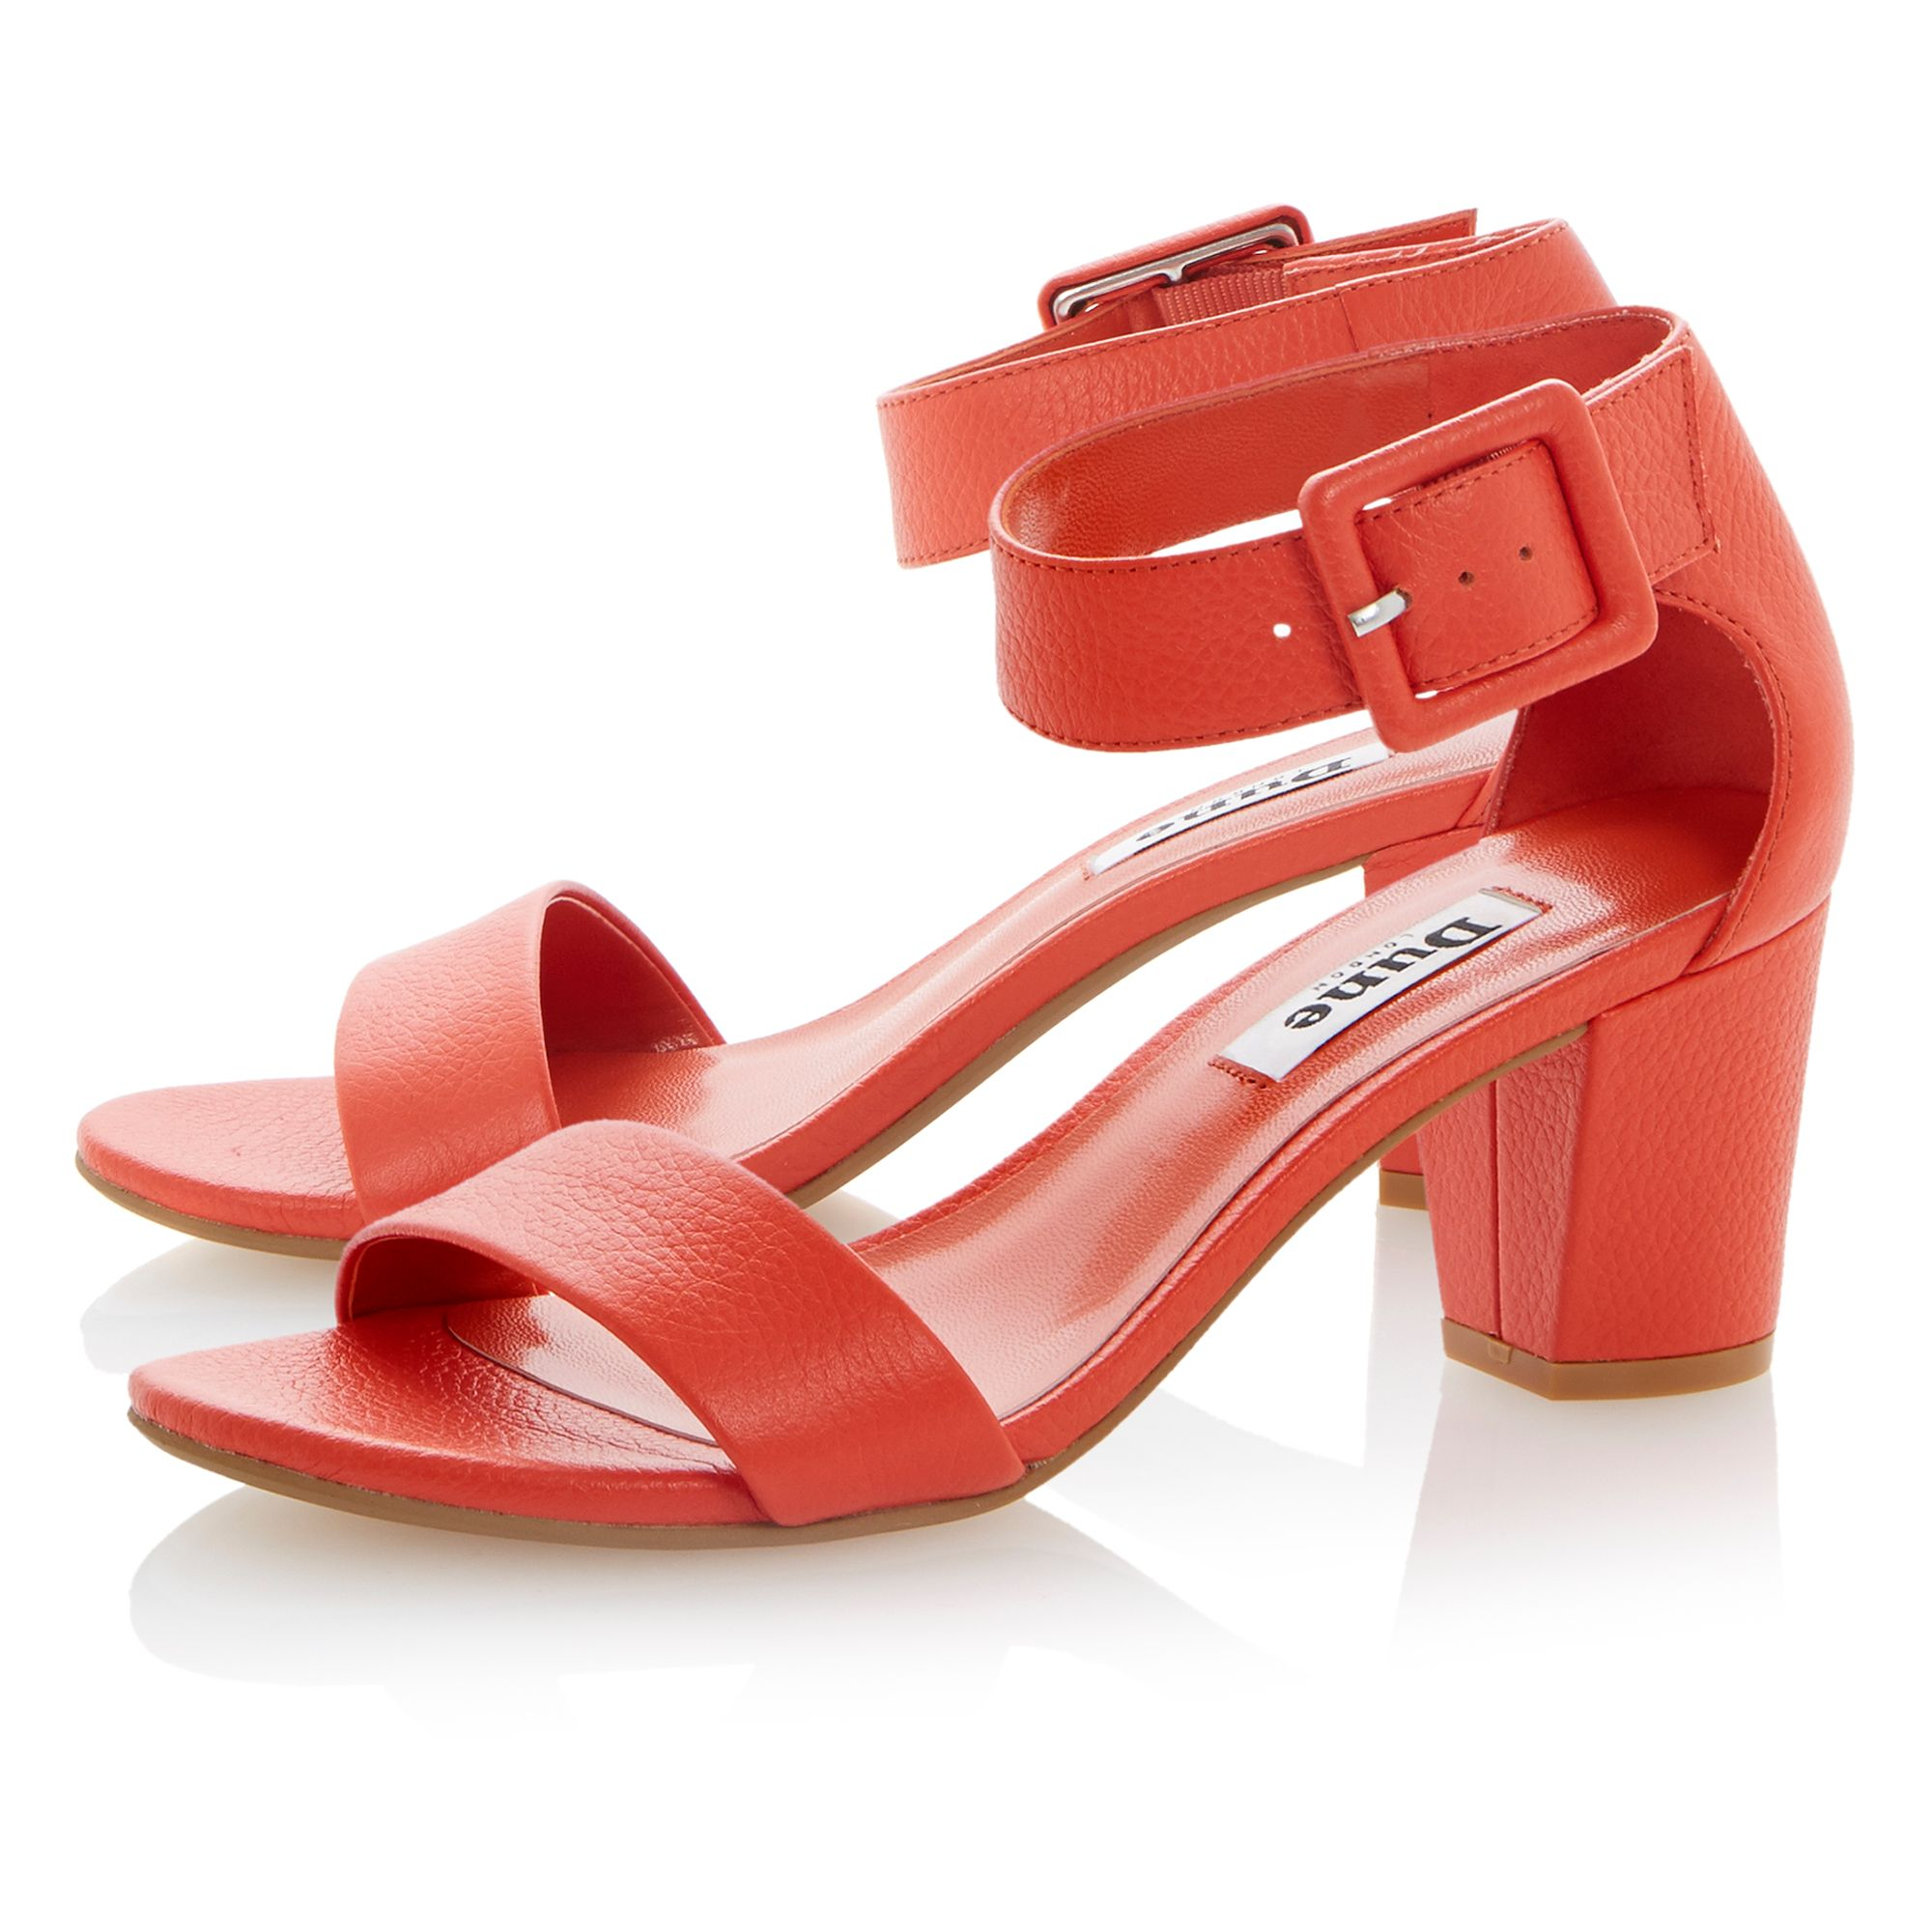 Fri leather buckle ankle strap sandals